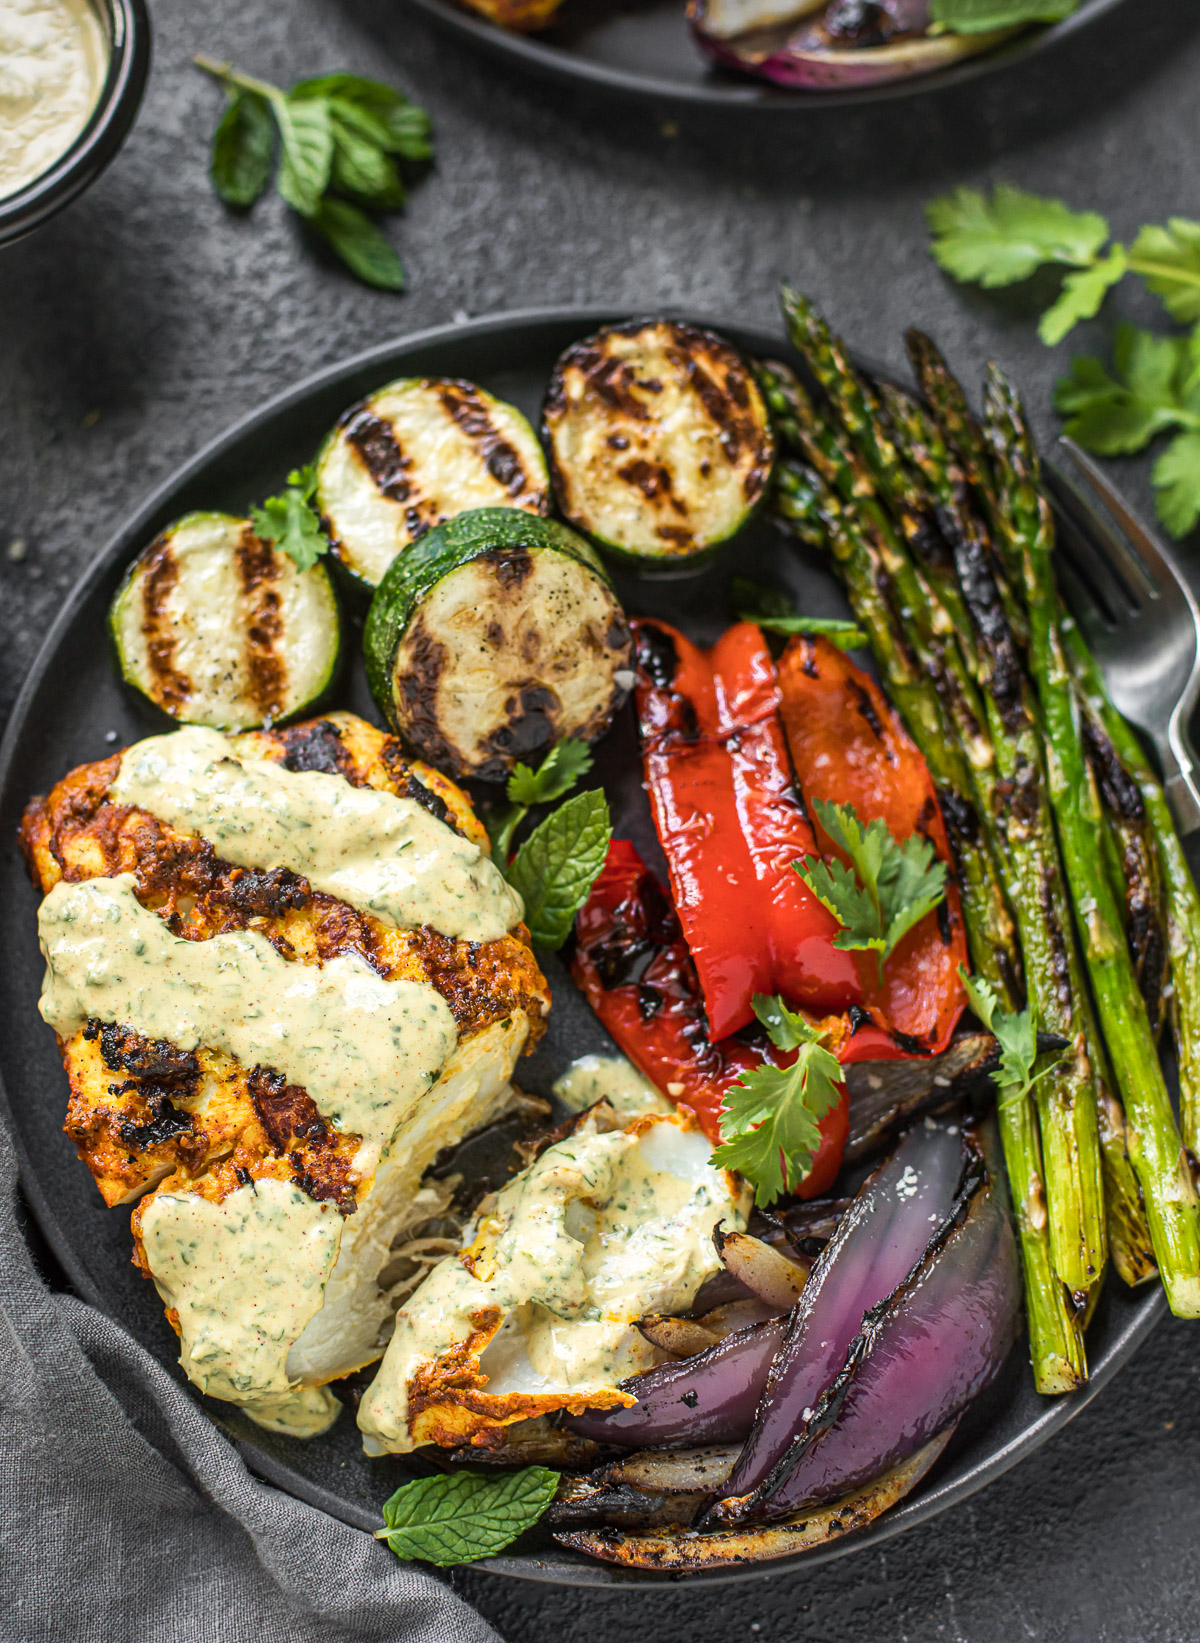 Tandoori-Spiced Alaska Halibut with Grilled Vegetables and Cilantro-Mint Raita